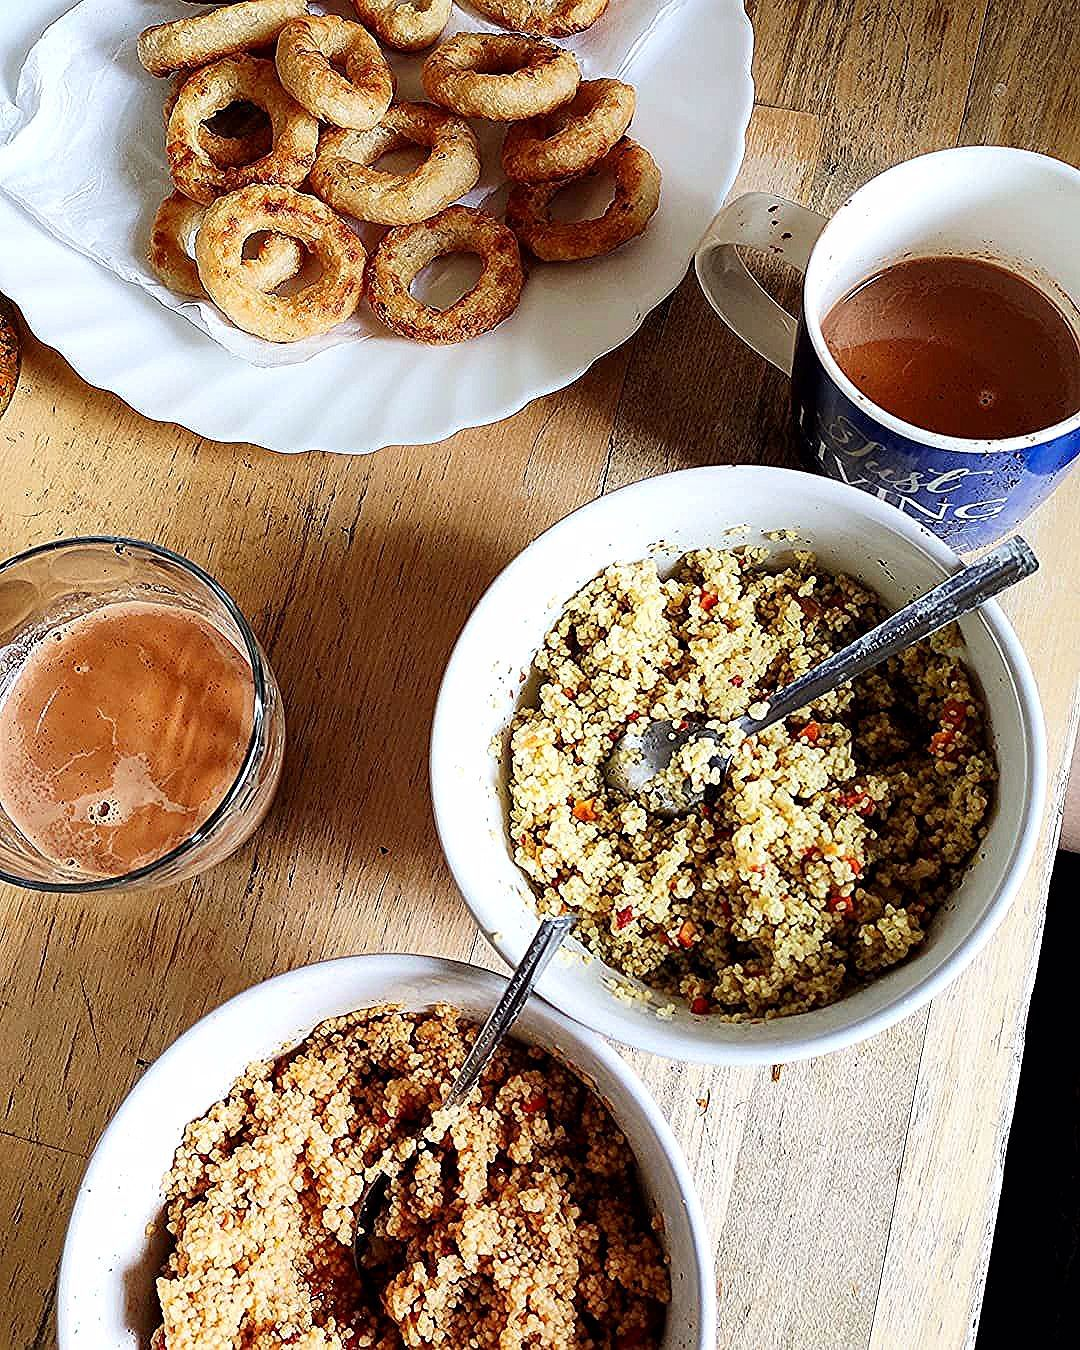 😍😍A variety-full Breakfast 😍😍😍  .  In the pic:- Onion Rings, Tomato Cous-cous, hot spicy cous-cous, and Hot Tea on a winter morning. 🥰🥰🥰  .  .  .  . . 🔥Homemade .  .  .  .  .  .  Subscribe our youtube channel (Link in bio) 🔴🔴🔴  For More 👉👉👉 @bhukkhad_billi  .  .  .  .  .  #bhukkhadbilli #tasteofindia #indianfood #indorestreetfood #indiancuisine #indianstreetfood #indianfoodbloggers #mumbaifood #punefoodblogger #desifood #mumbaifoodies #indianrecipes #delhifoodie #delhifoodies #mum